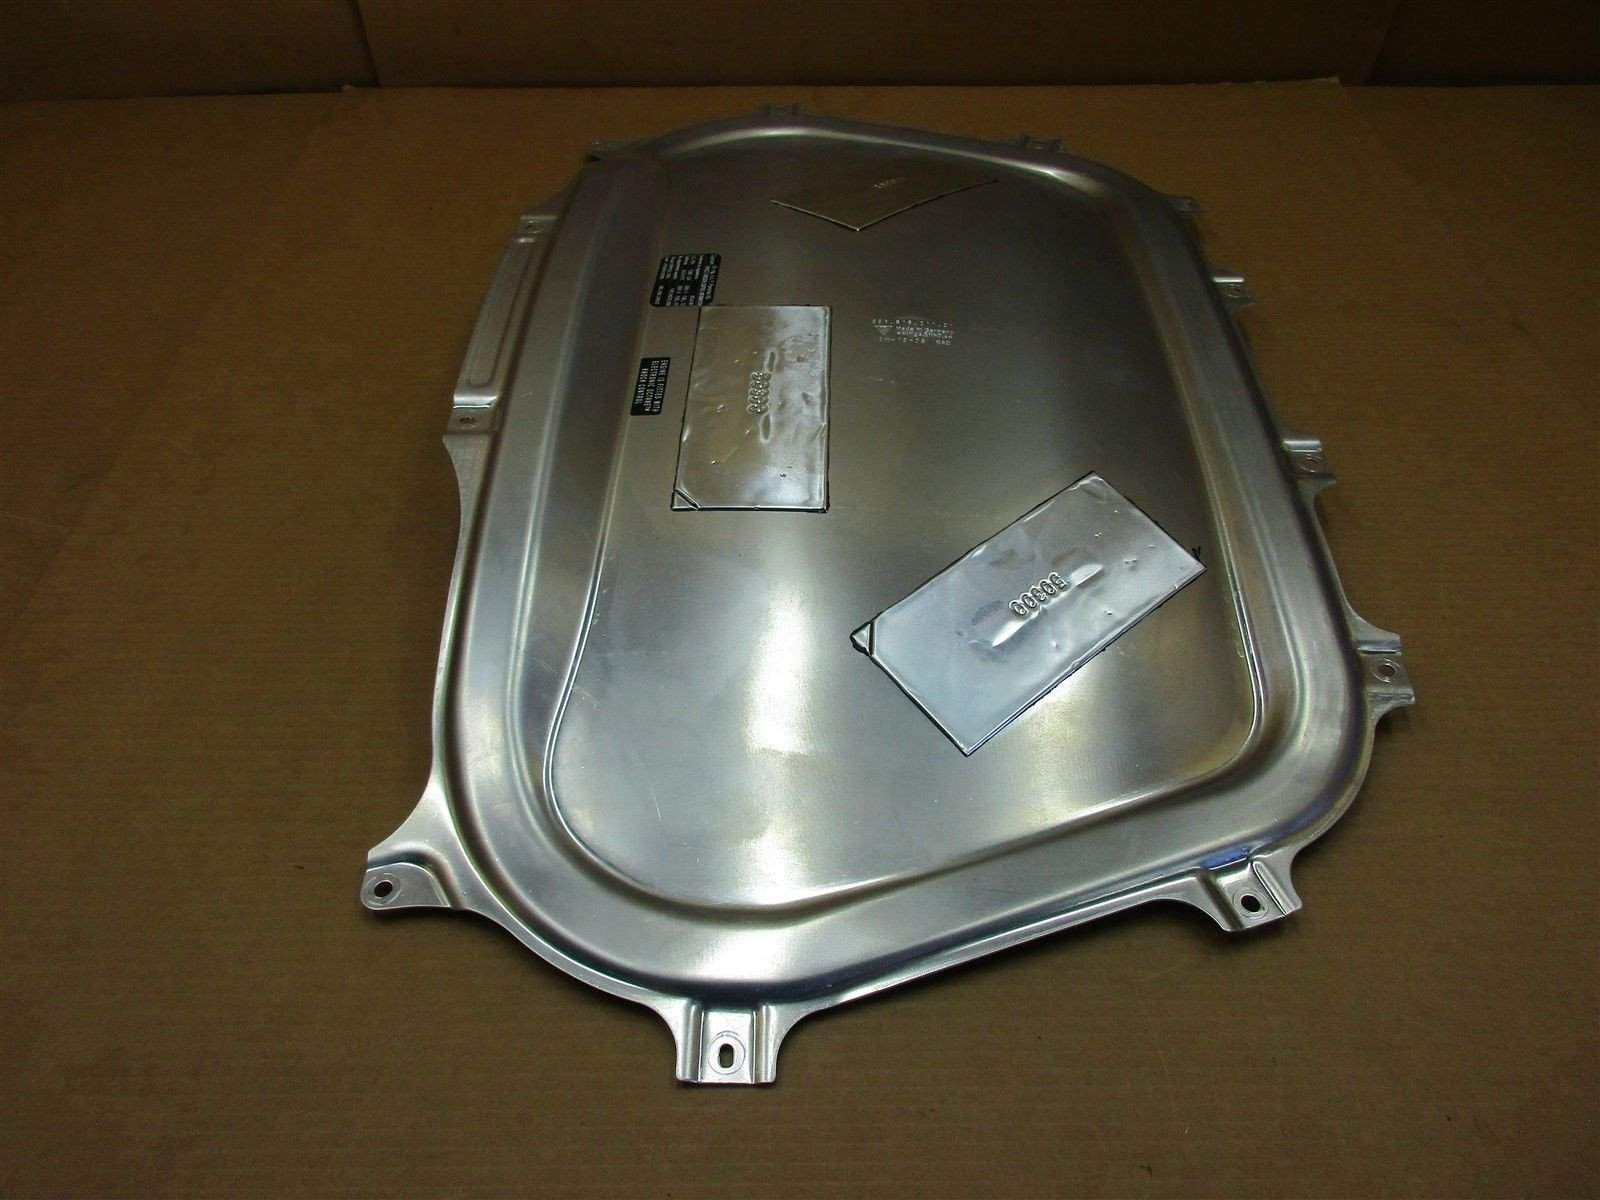 14 Cayman RWD Porsche 981 ENGINE TOP ACCESS PANEL HEAT SHIELD 98151321101 6,915